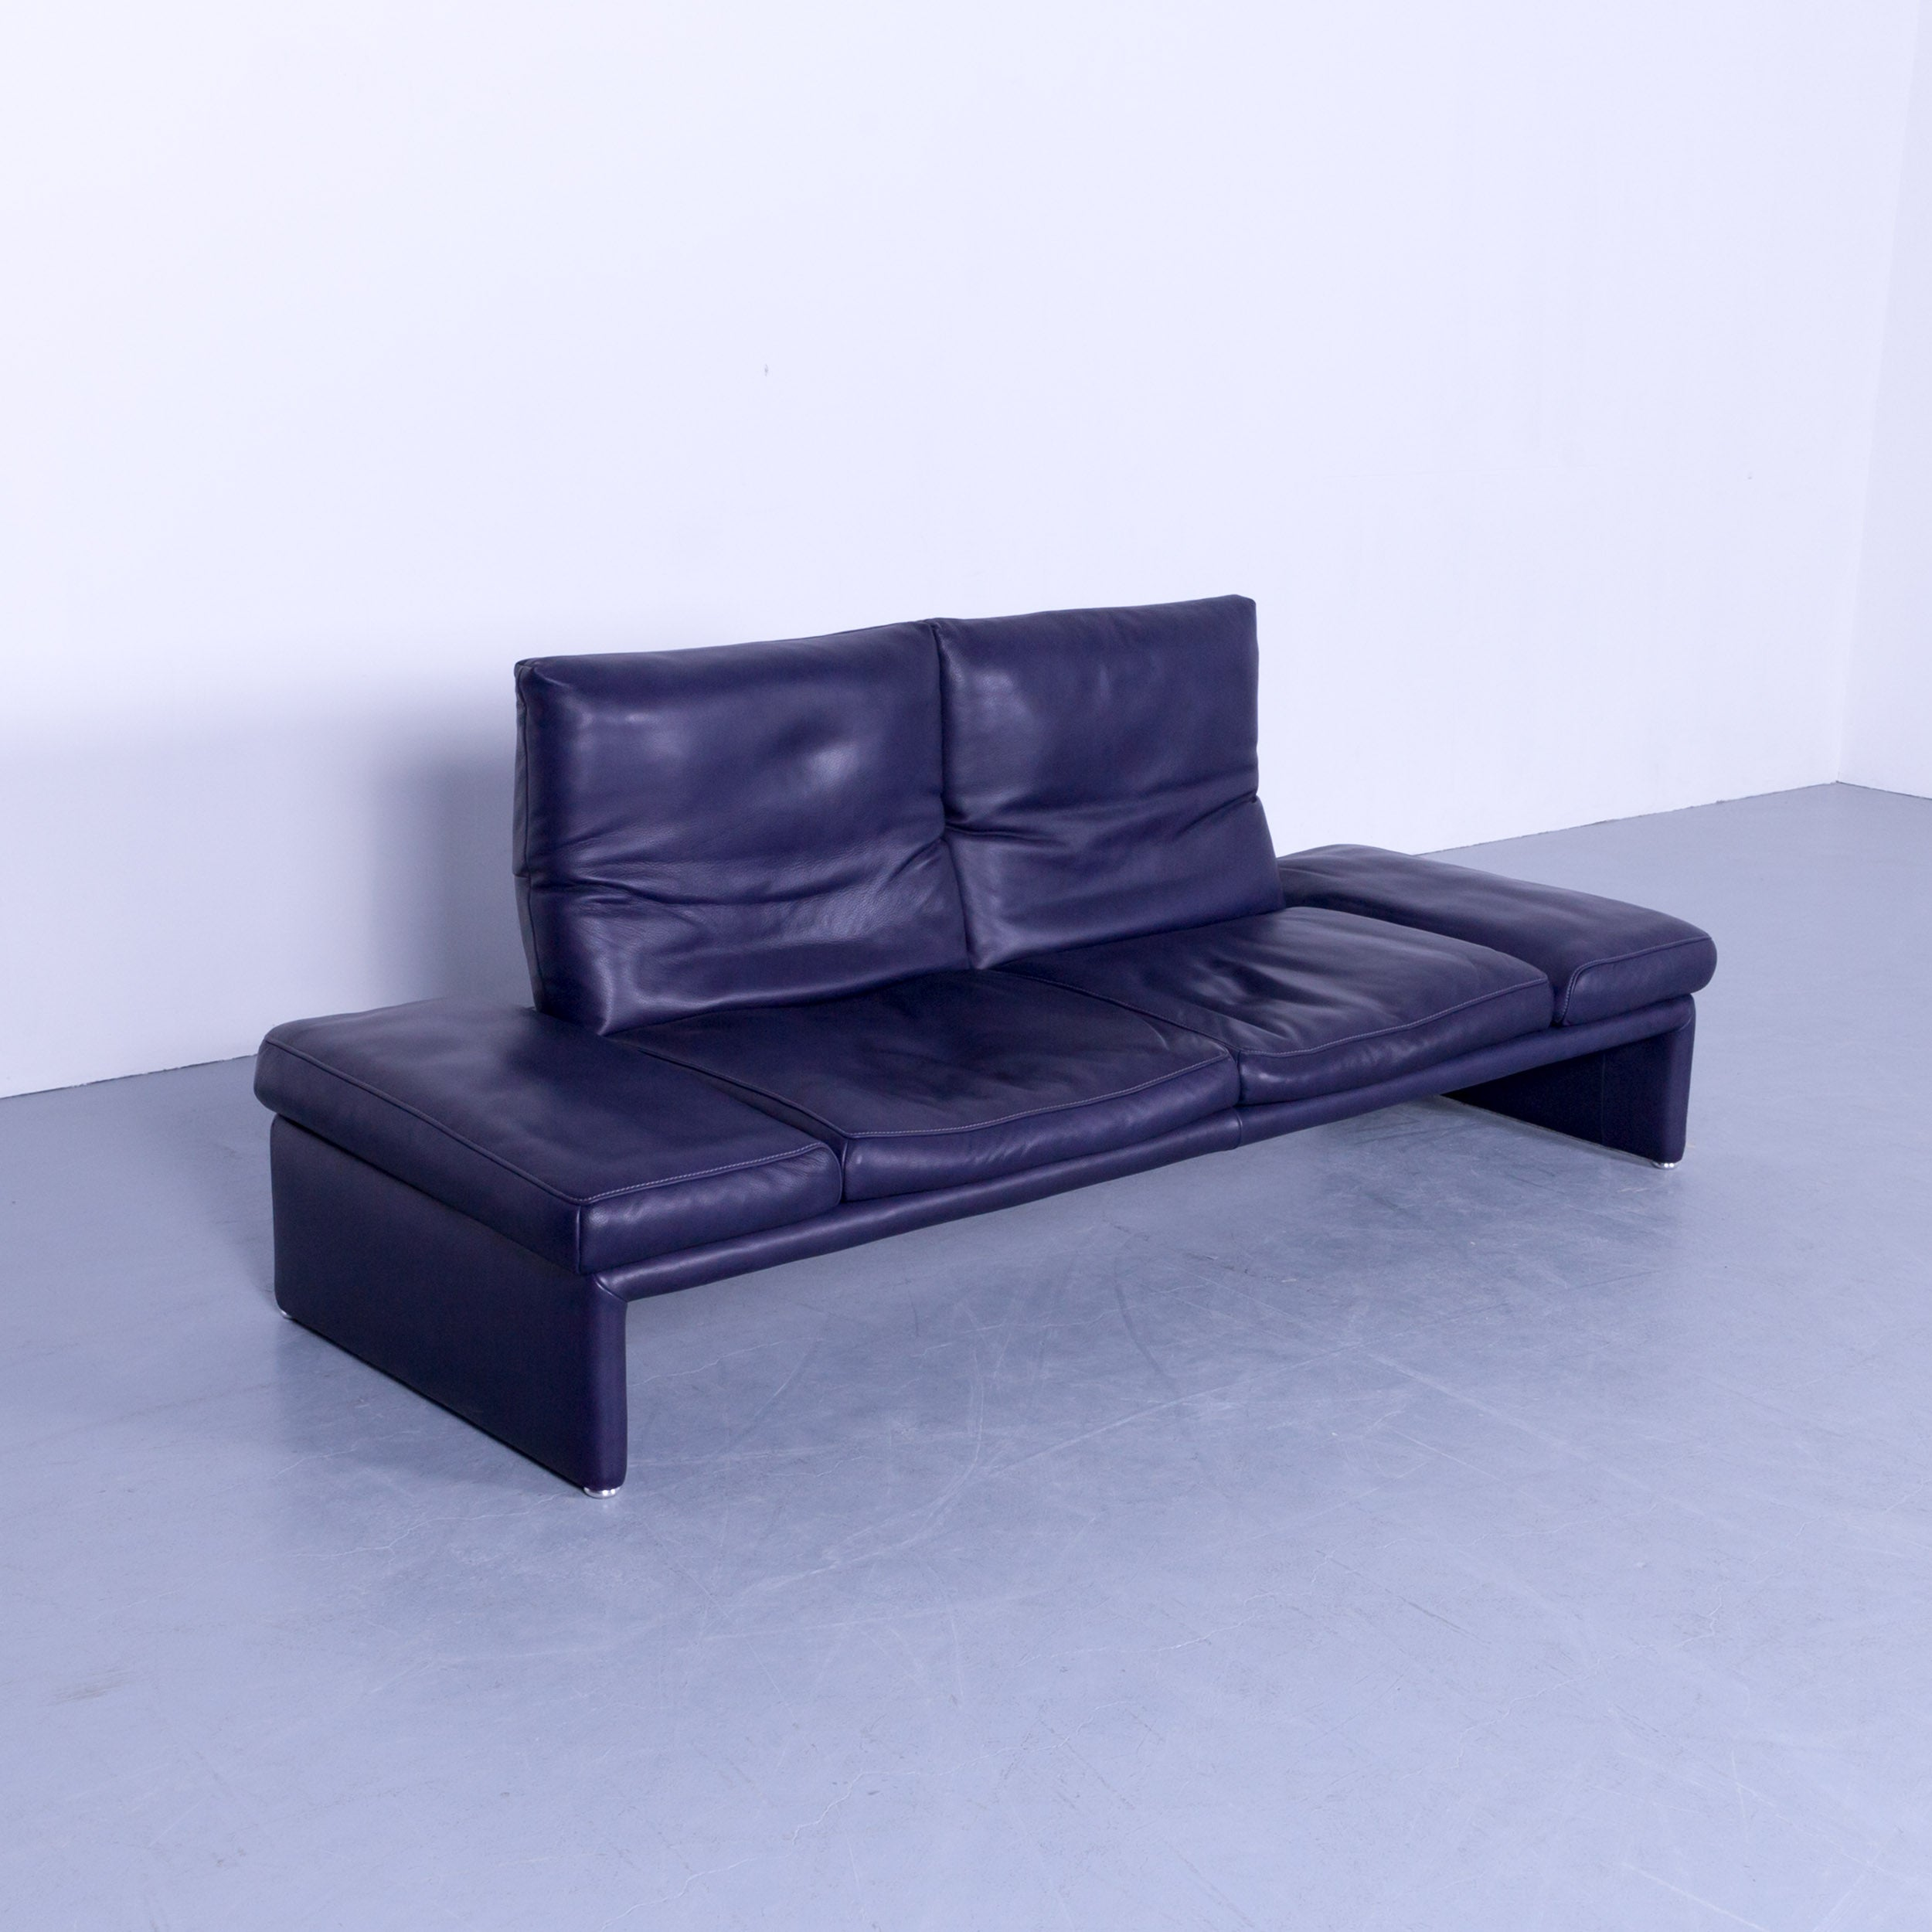 Couch Leder Cappuccino Koinor Raoul Designer Sofa And Footstool Purple Eggplant Colored Leather